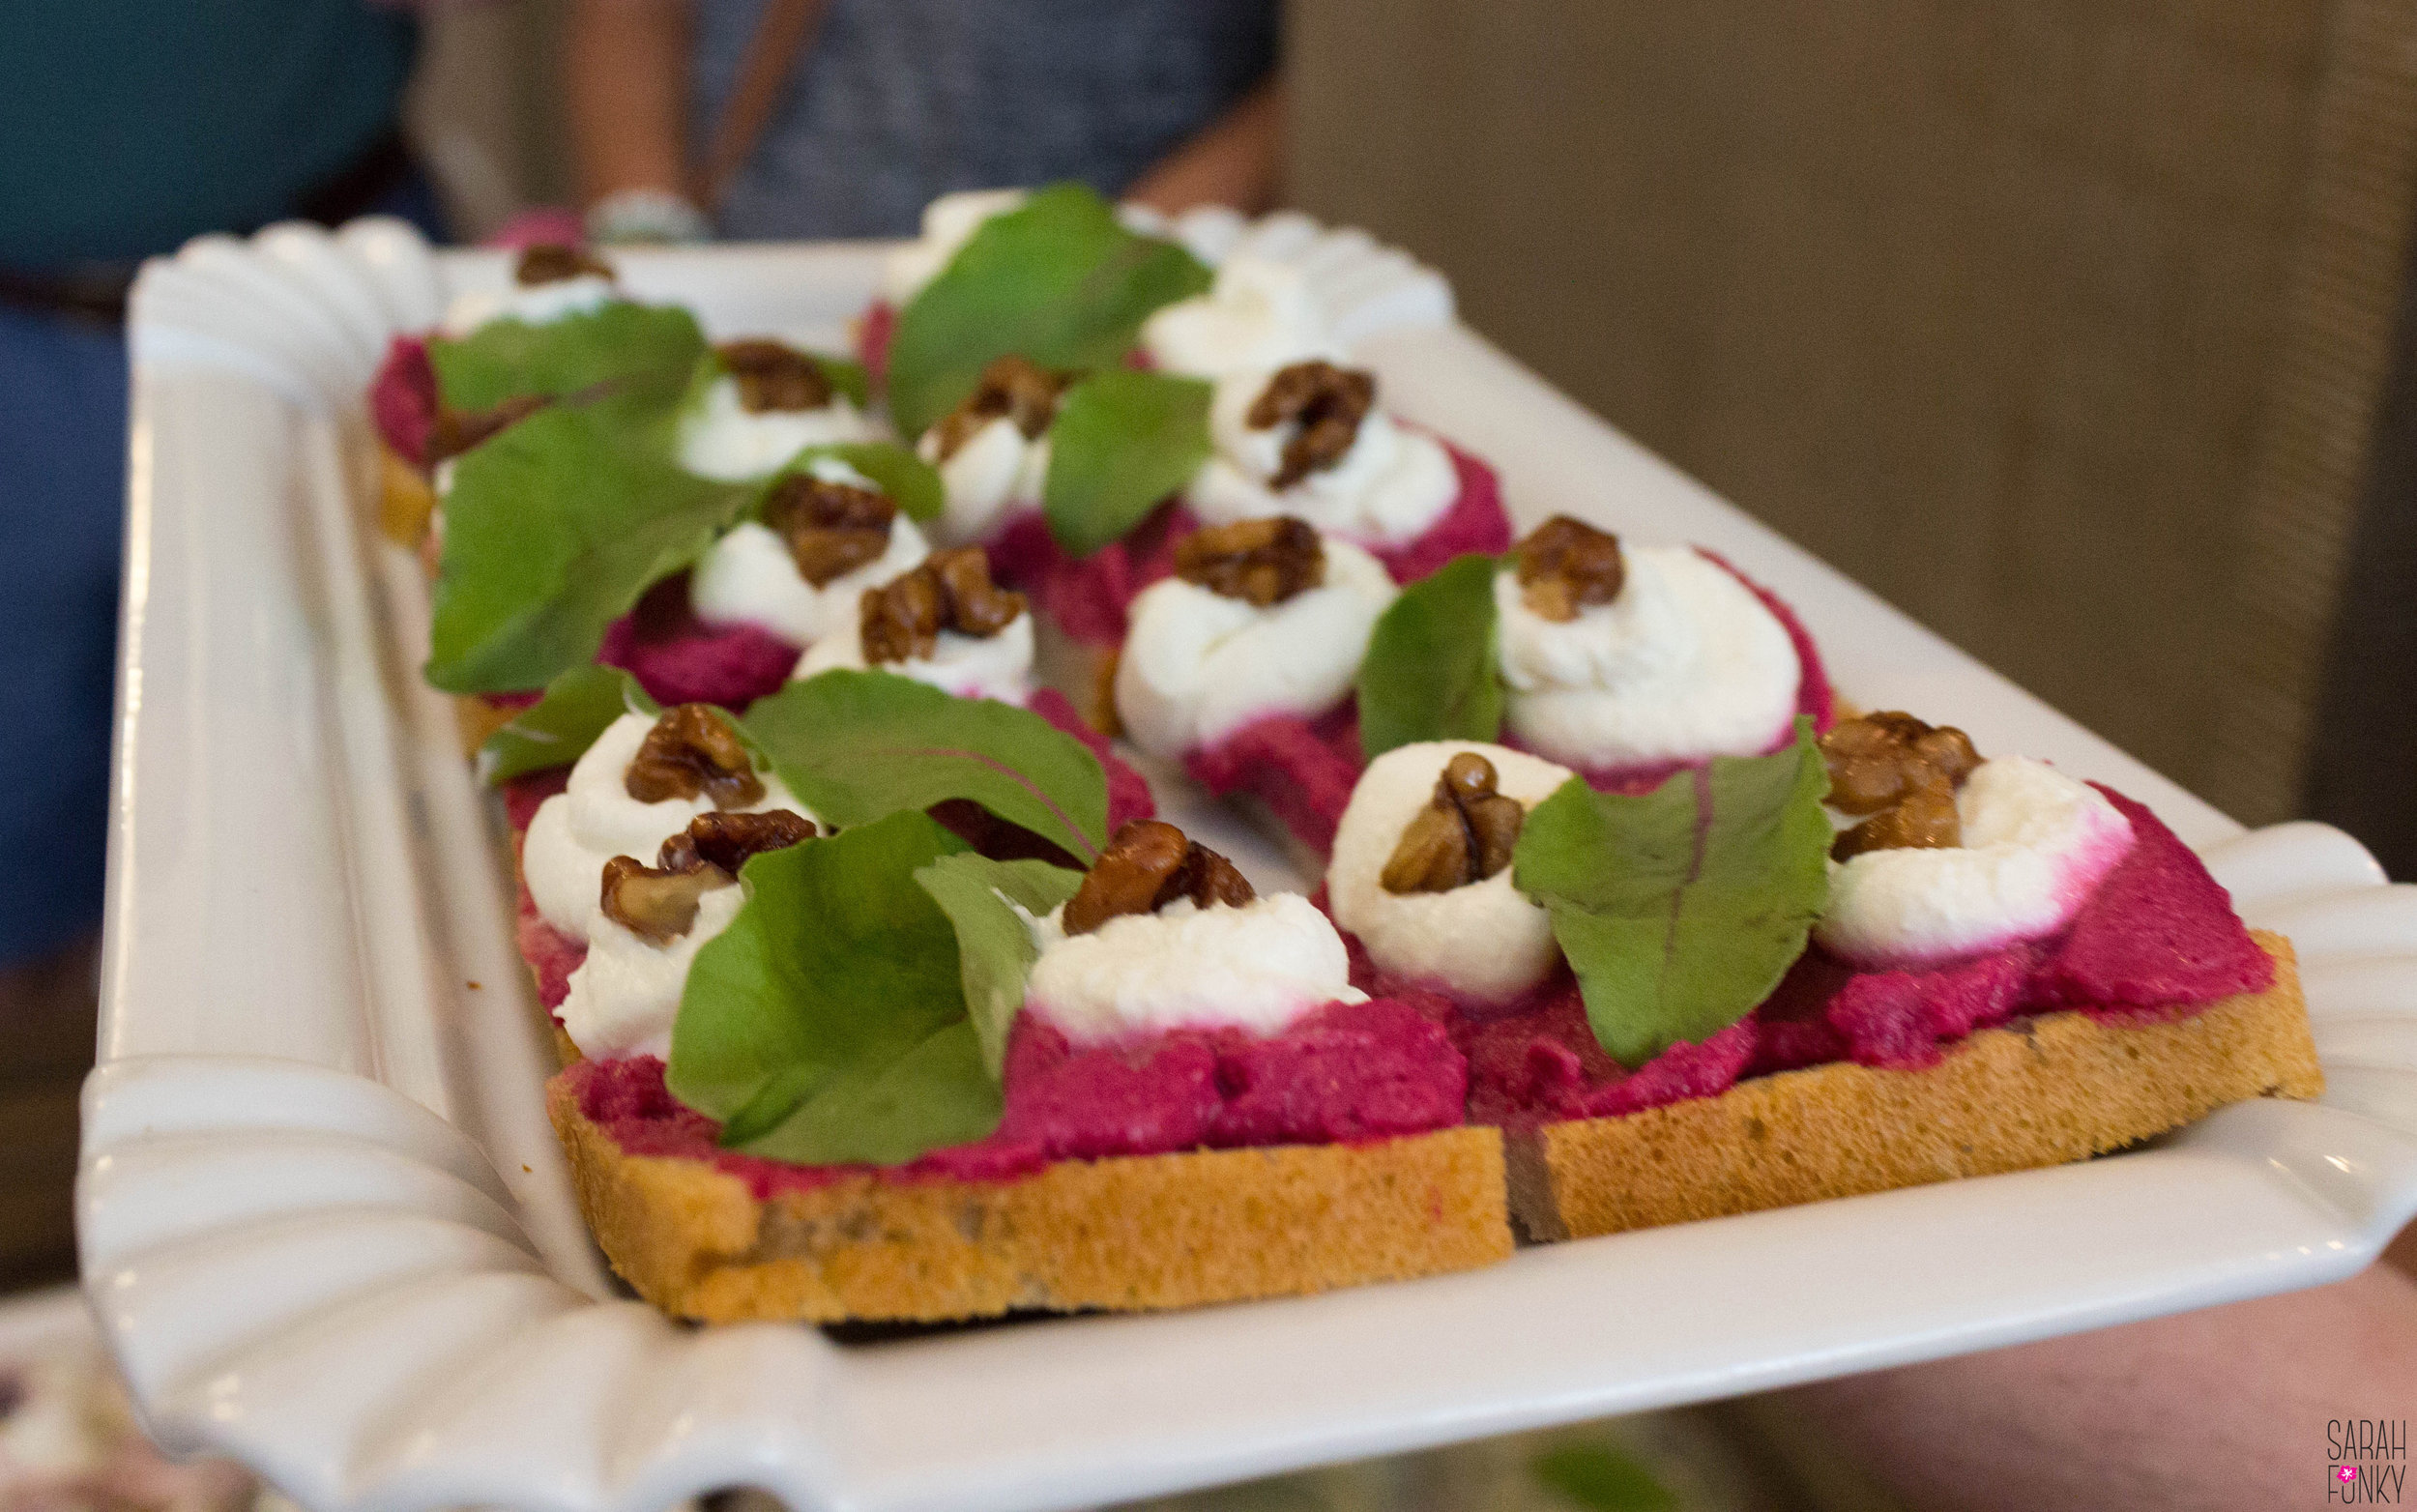 Chlebikcy (open-faced sandwiches) with a gourmet twist